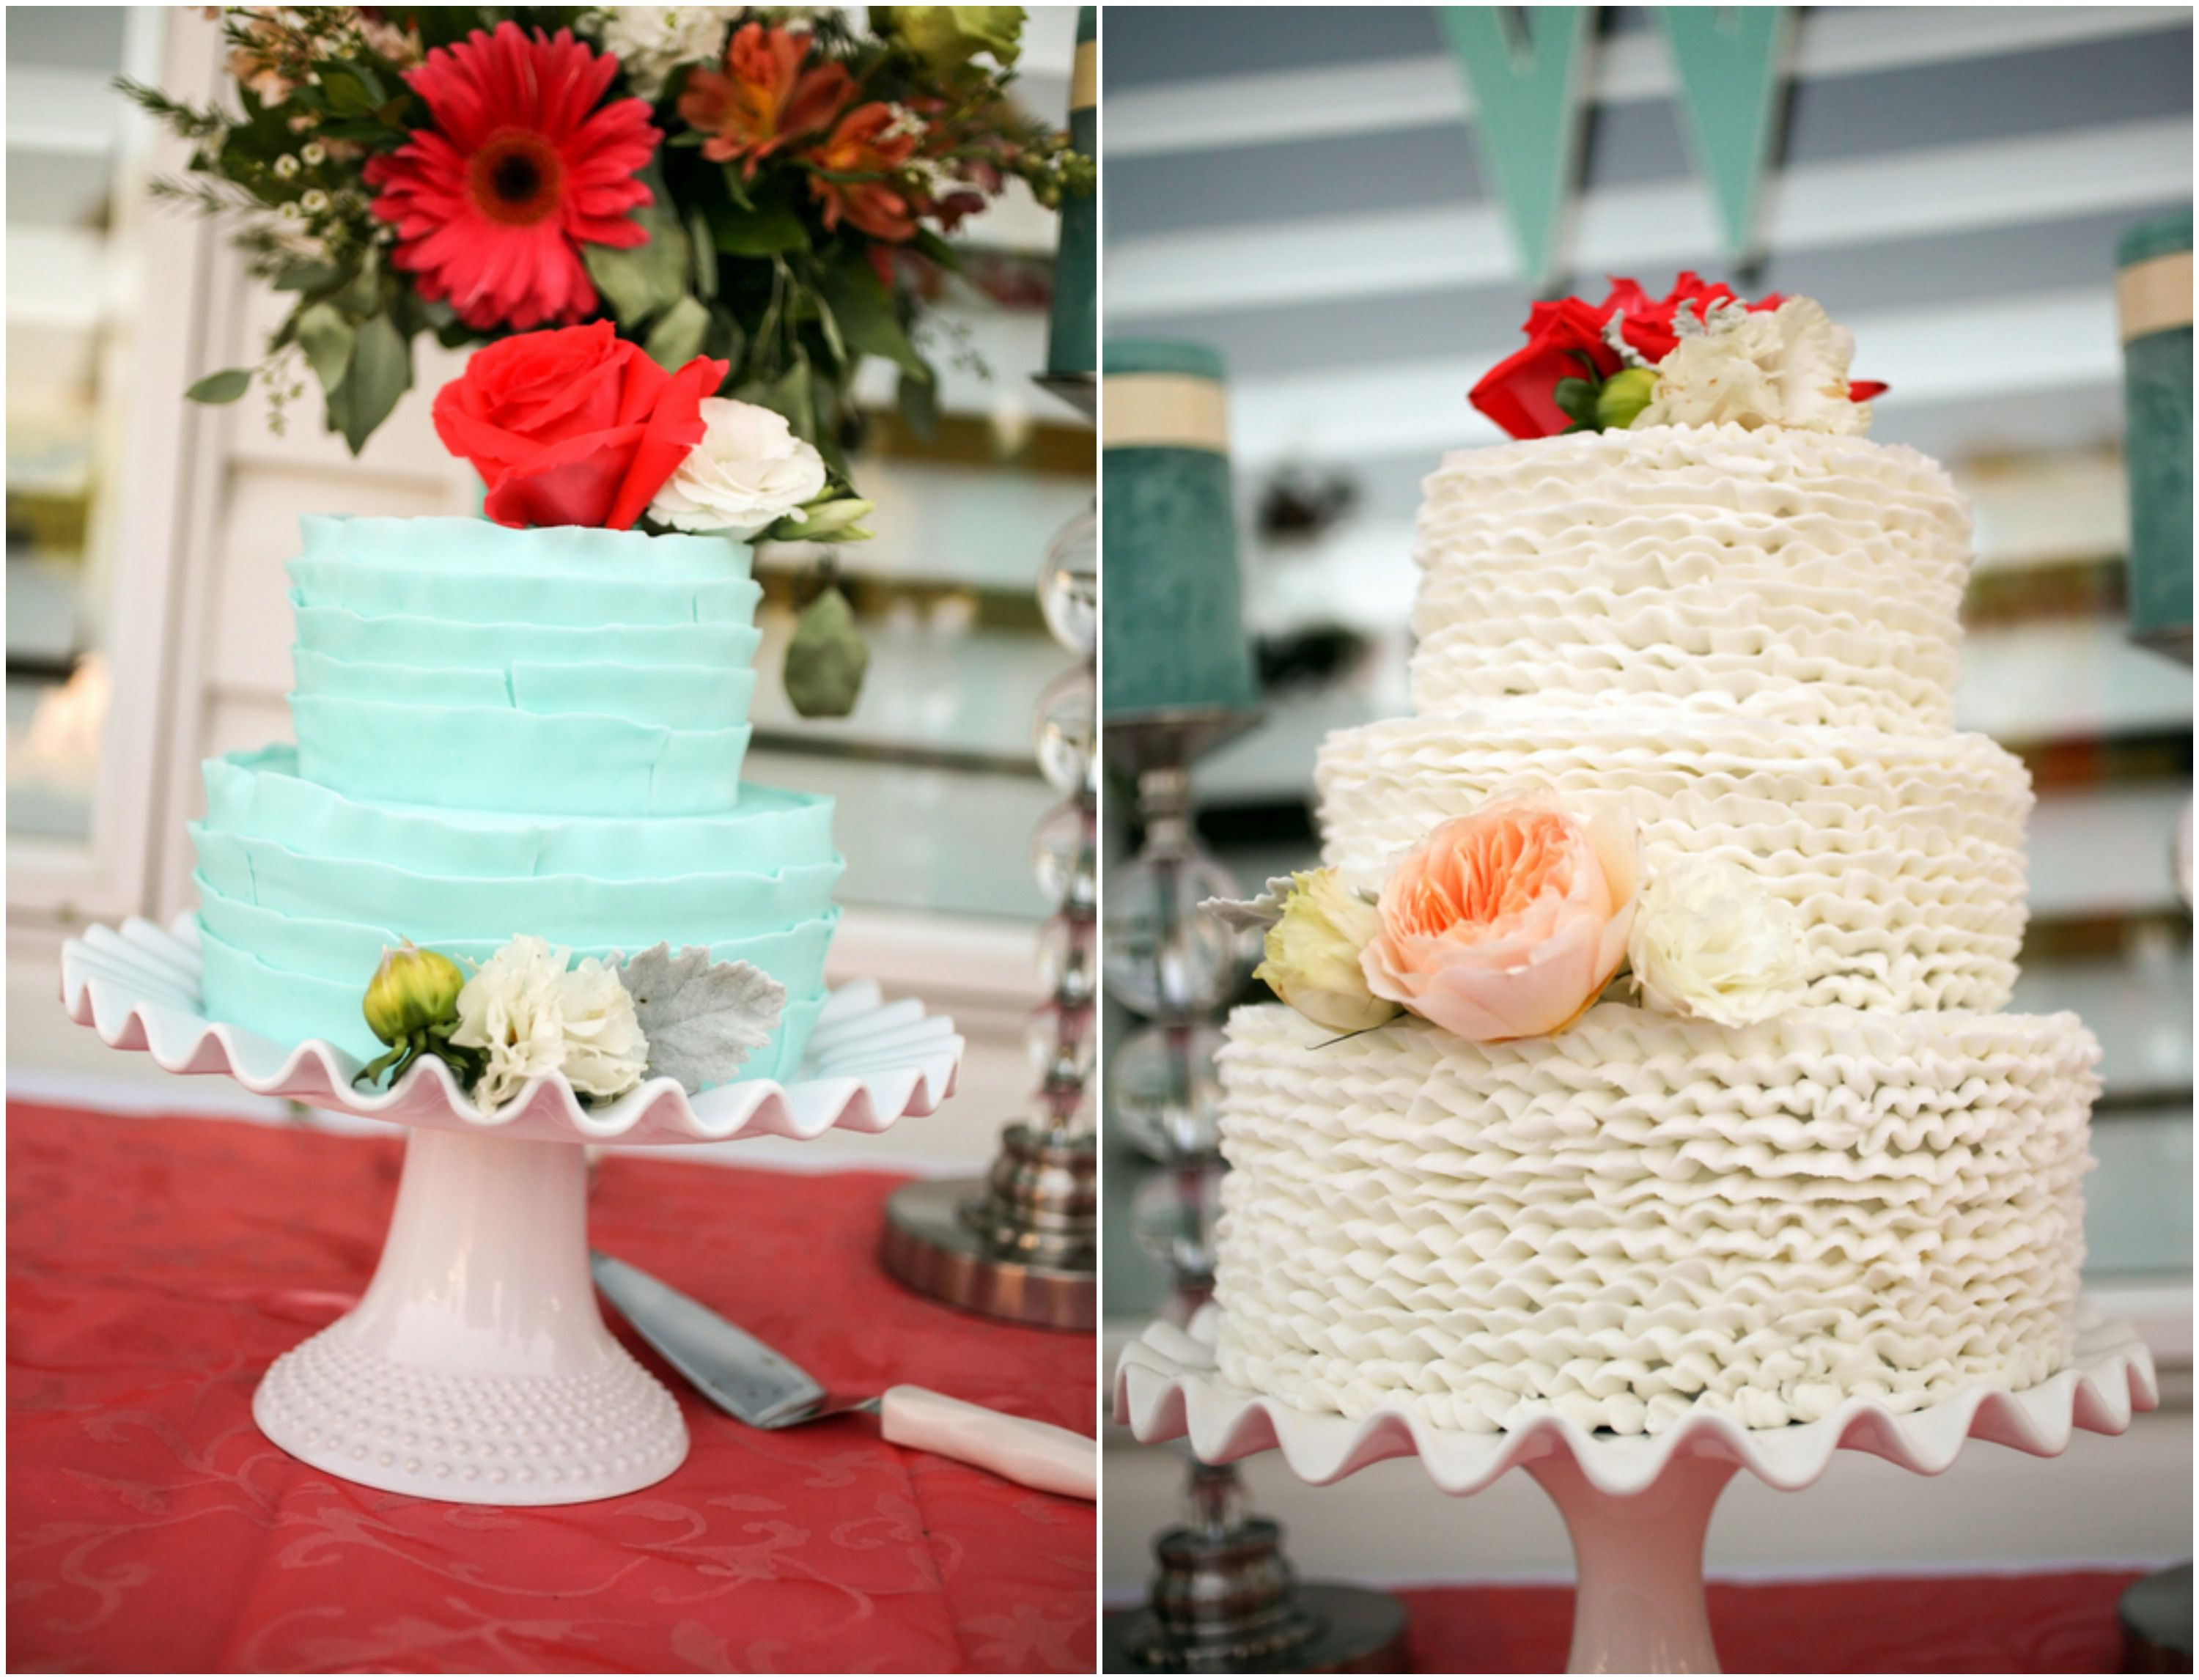 Bright and Colorful Backyard Wedding - Rustic Wedding Chic on family cake ideas, backyard golf ideas, backyard bbq wedding cake, backyard centerpieces ideas, backyard decorating ideas, backyard dinner ideas, renee cake ideas, backyard rose ideas, backyard anniversary ideas, backyard reception food ideas, backyard wedding tips, photography cake ideas, backyard birthday ideas, backyard ceremony ideas, backyard wedding decoration ideas, backyard wishing well ideas, backyard graduation ideas, backyard decor ideas, diy cake ideas, prince charming cake ideas,